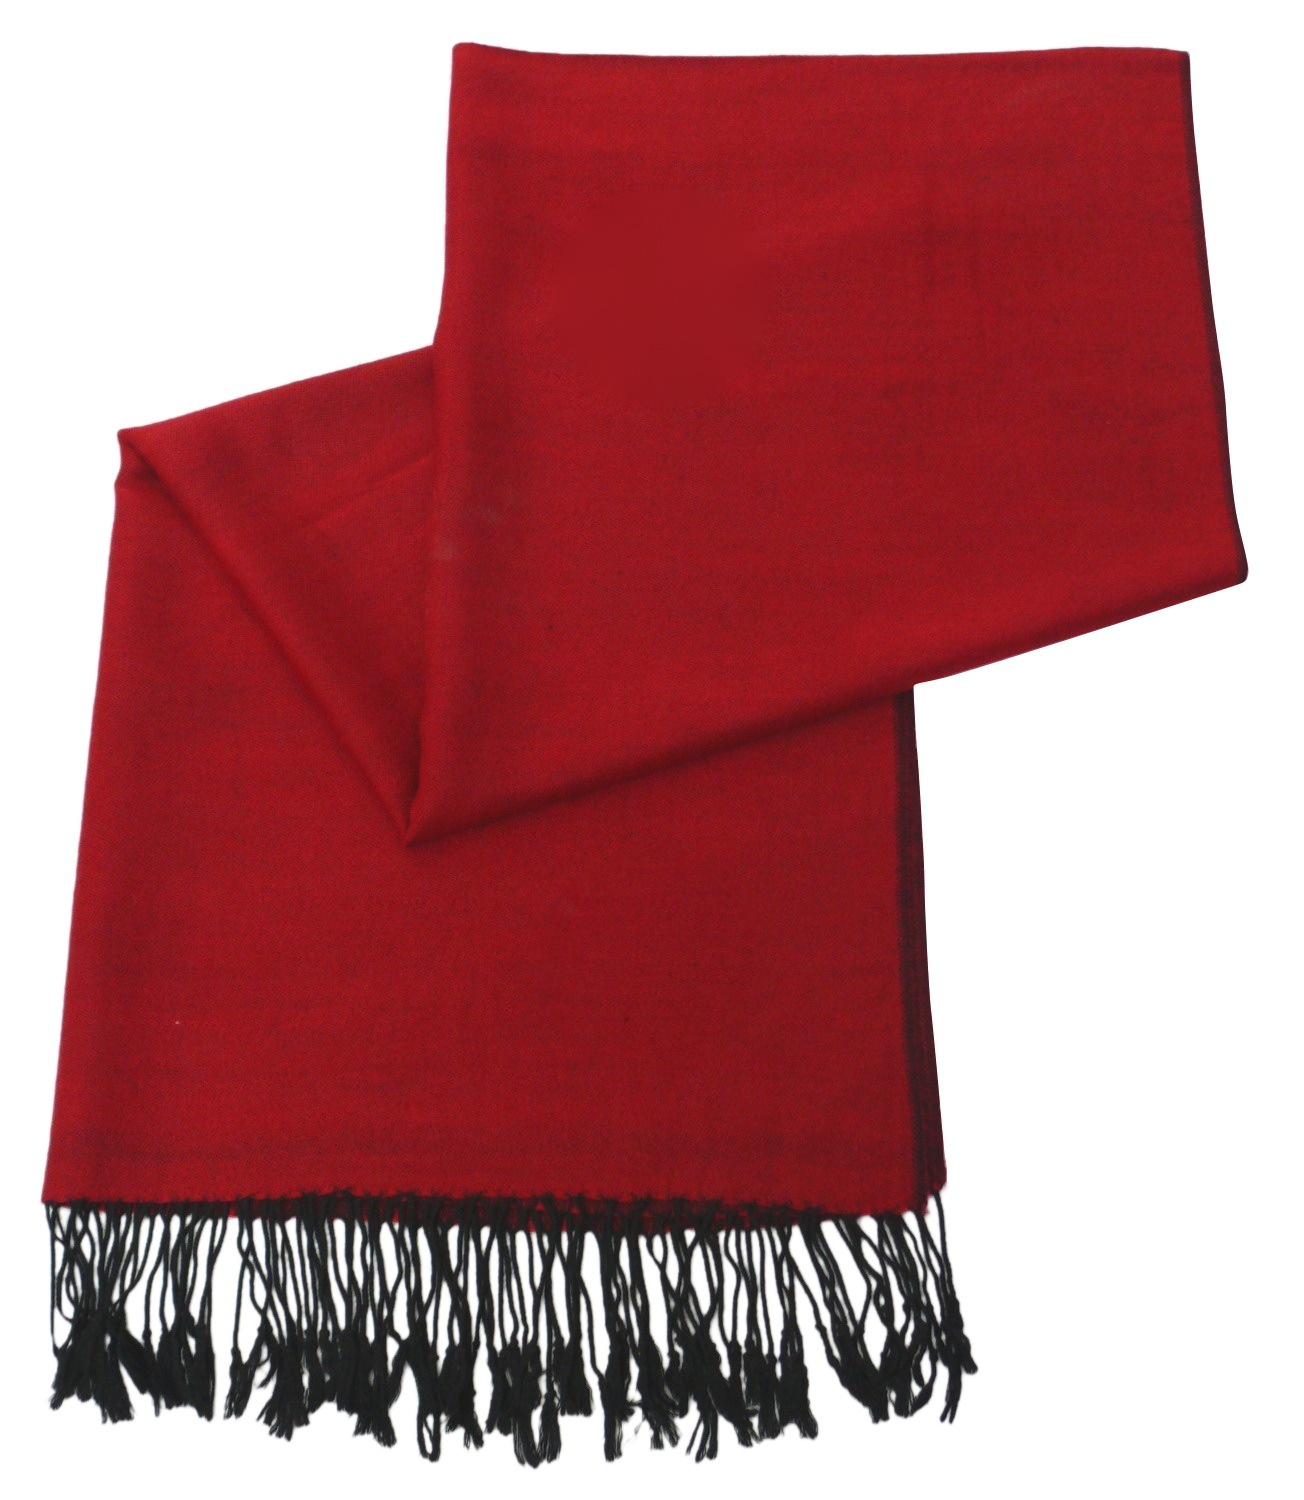 Red & Black Solid Color Design Pashmina Shawl Scarf Wrap Pashminas Shawls Scarves Wraps a1106-401